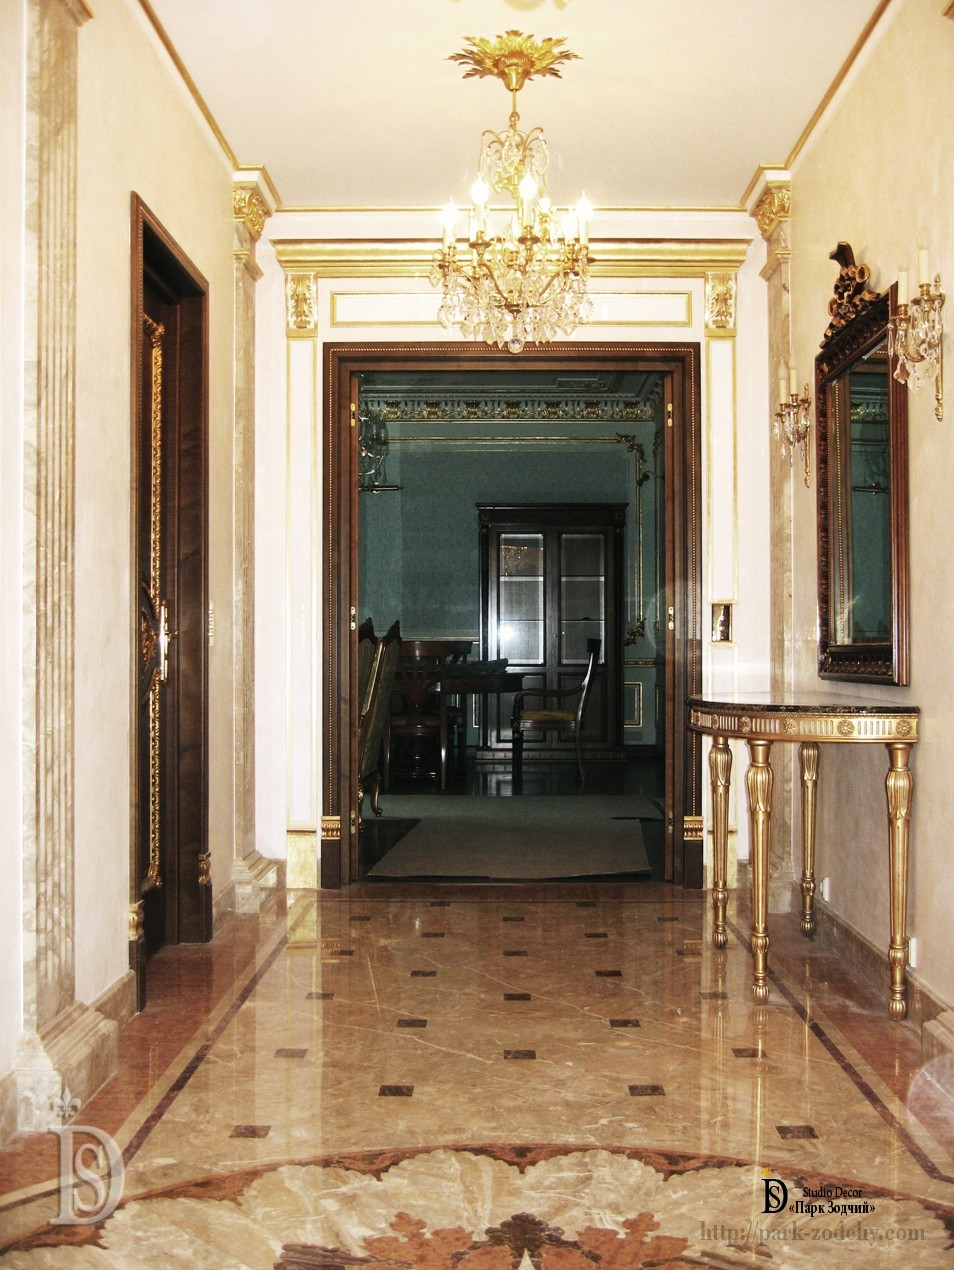 The hall is decorated with marble, stucco